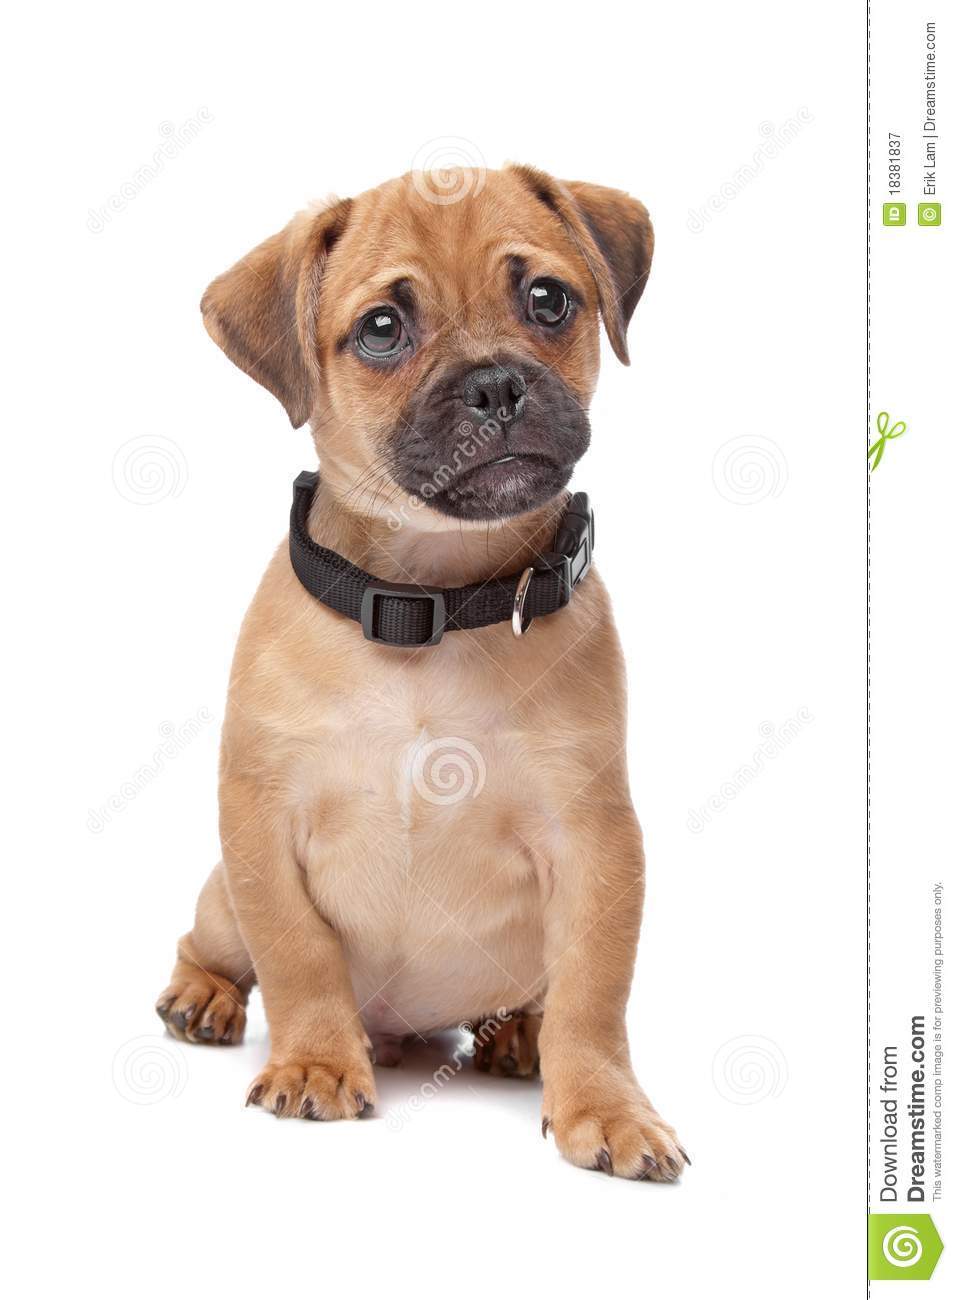 Fabelhaft Pug Spaniel mix breed dog stock image. Image of charles - 18381837 #LP_17